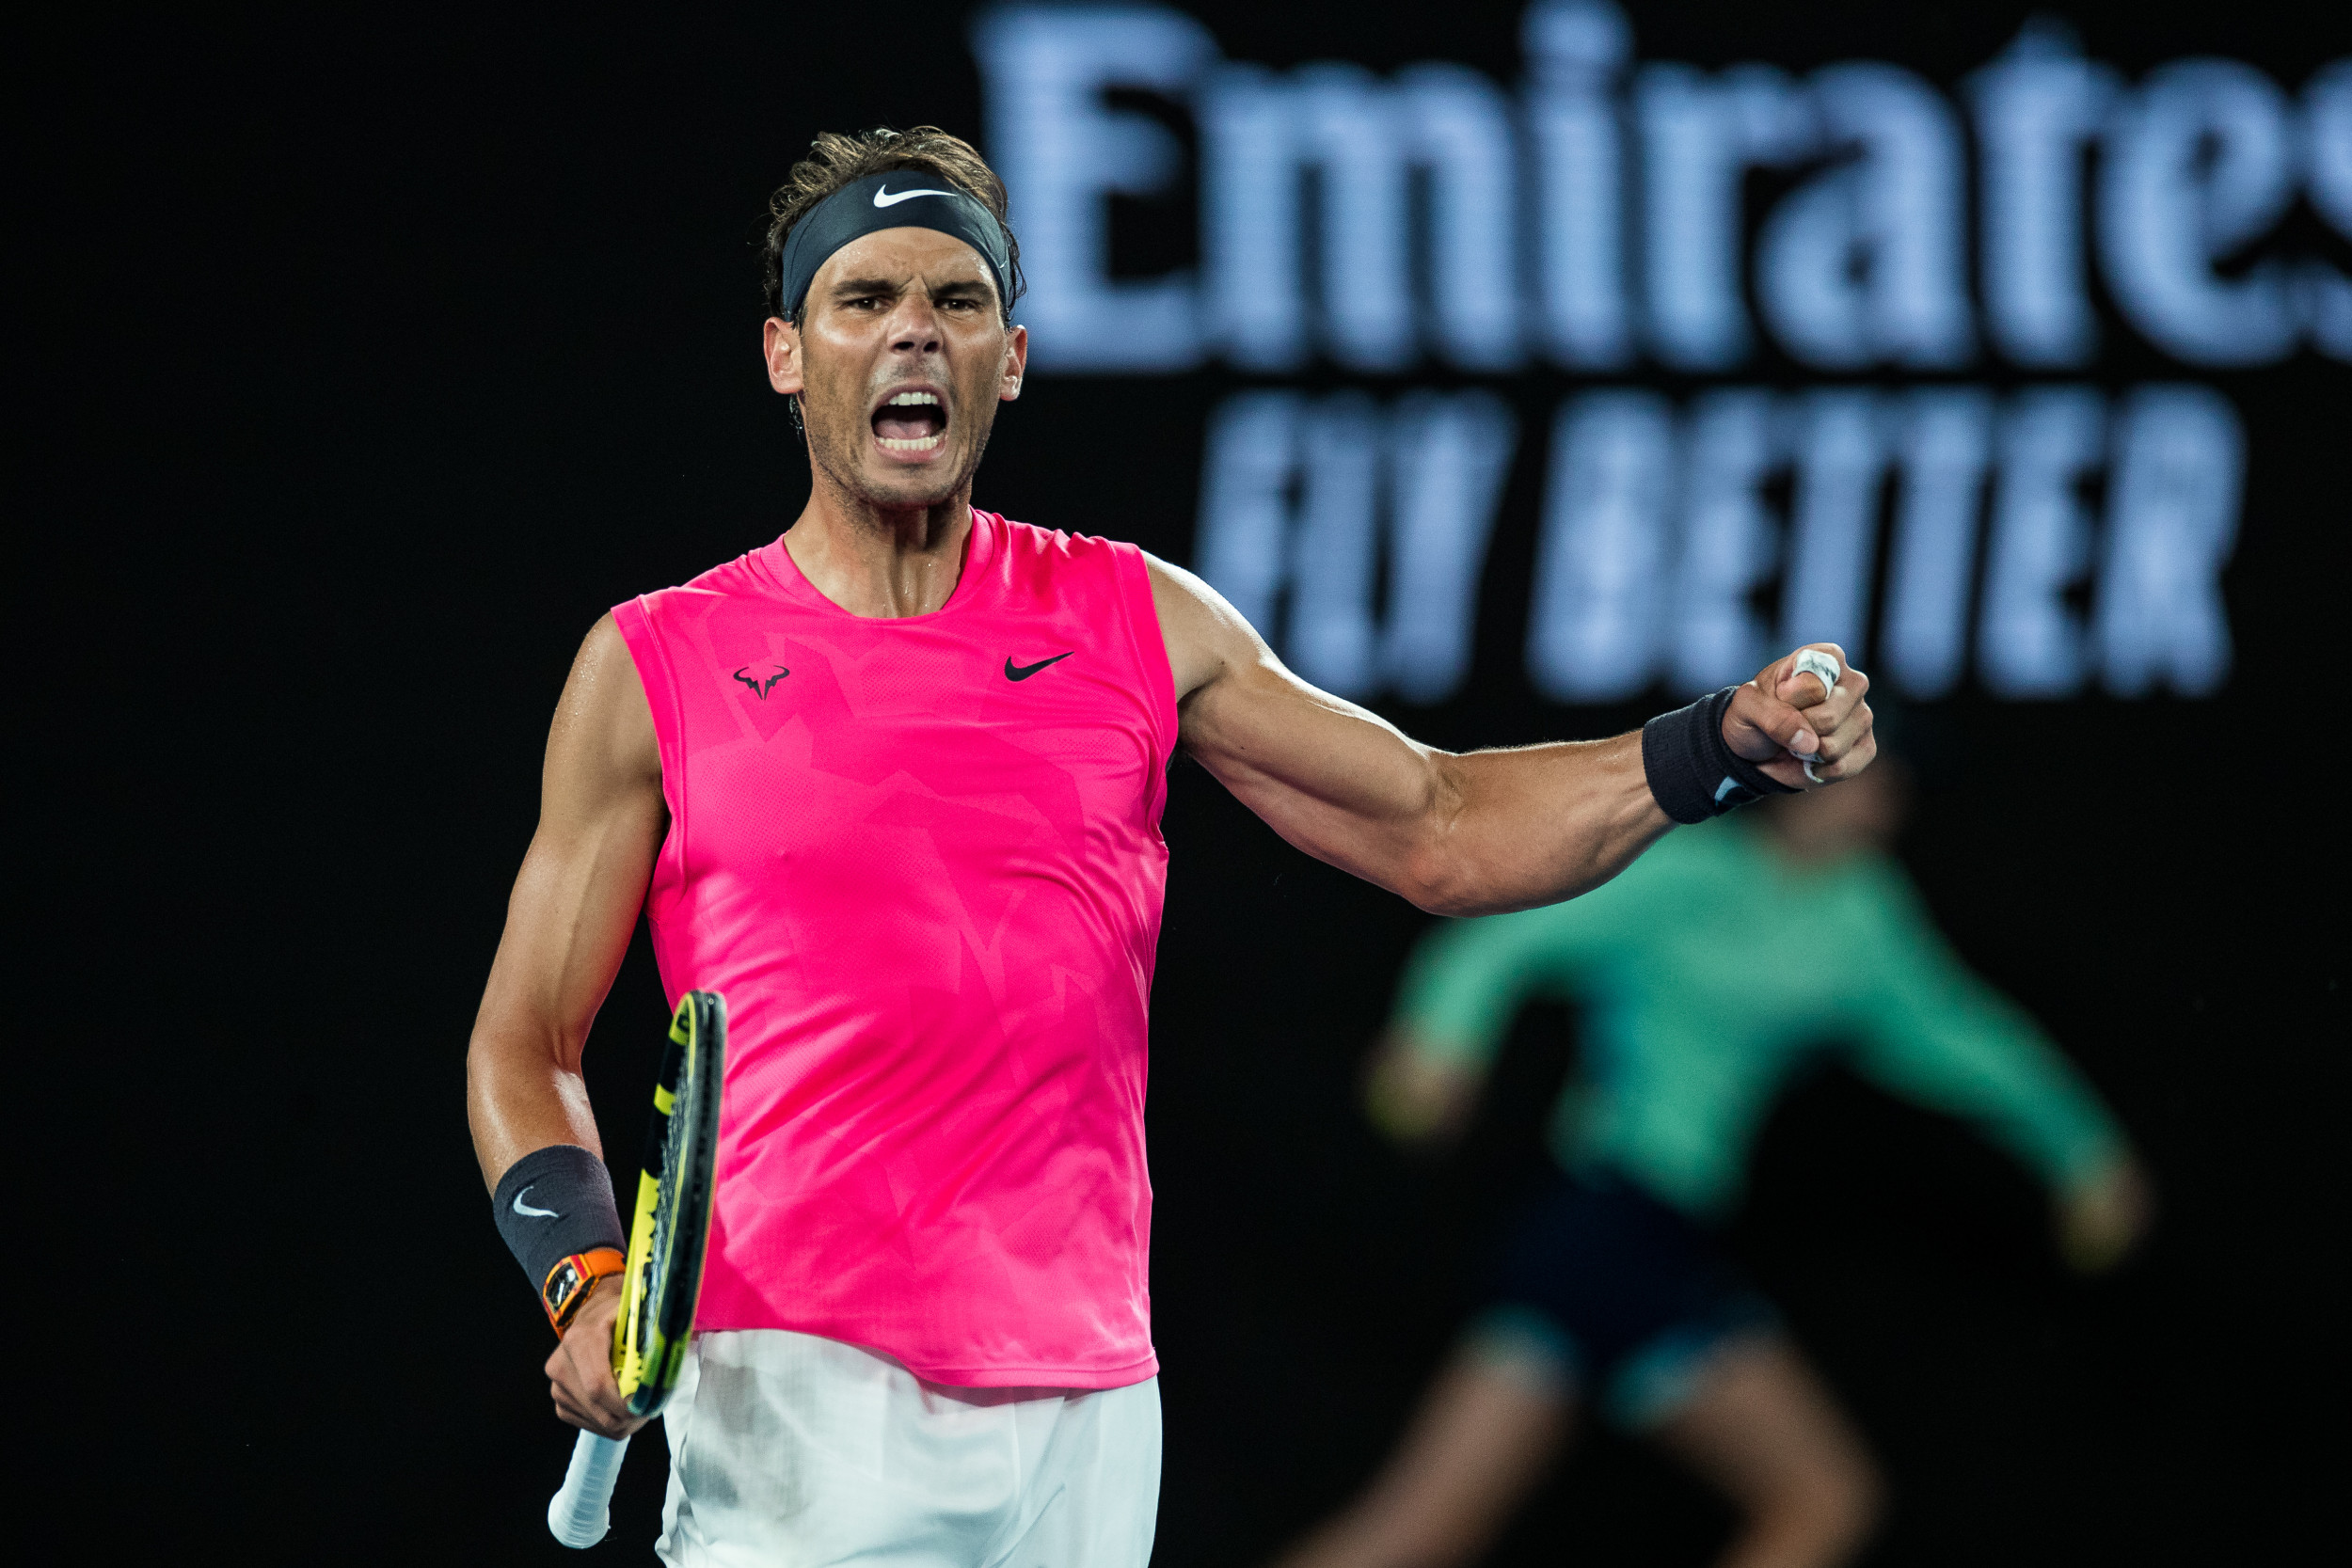 Australian Open Ruthless Nadal Crushes Busta To Reach